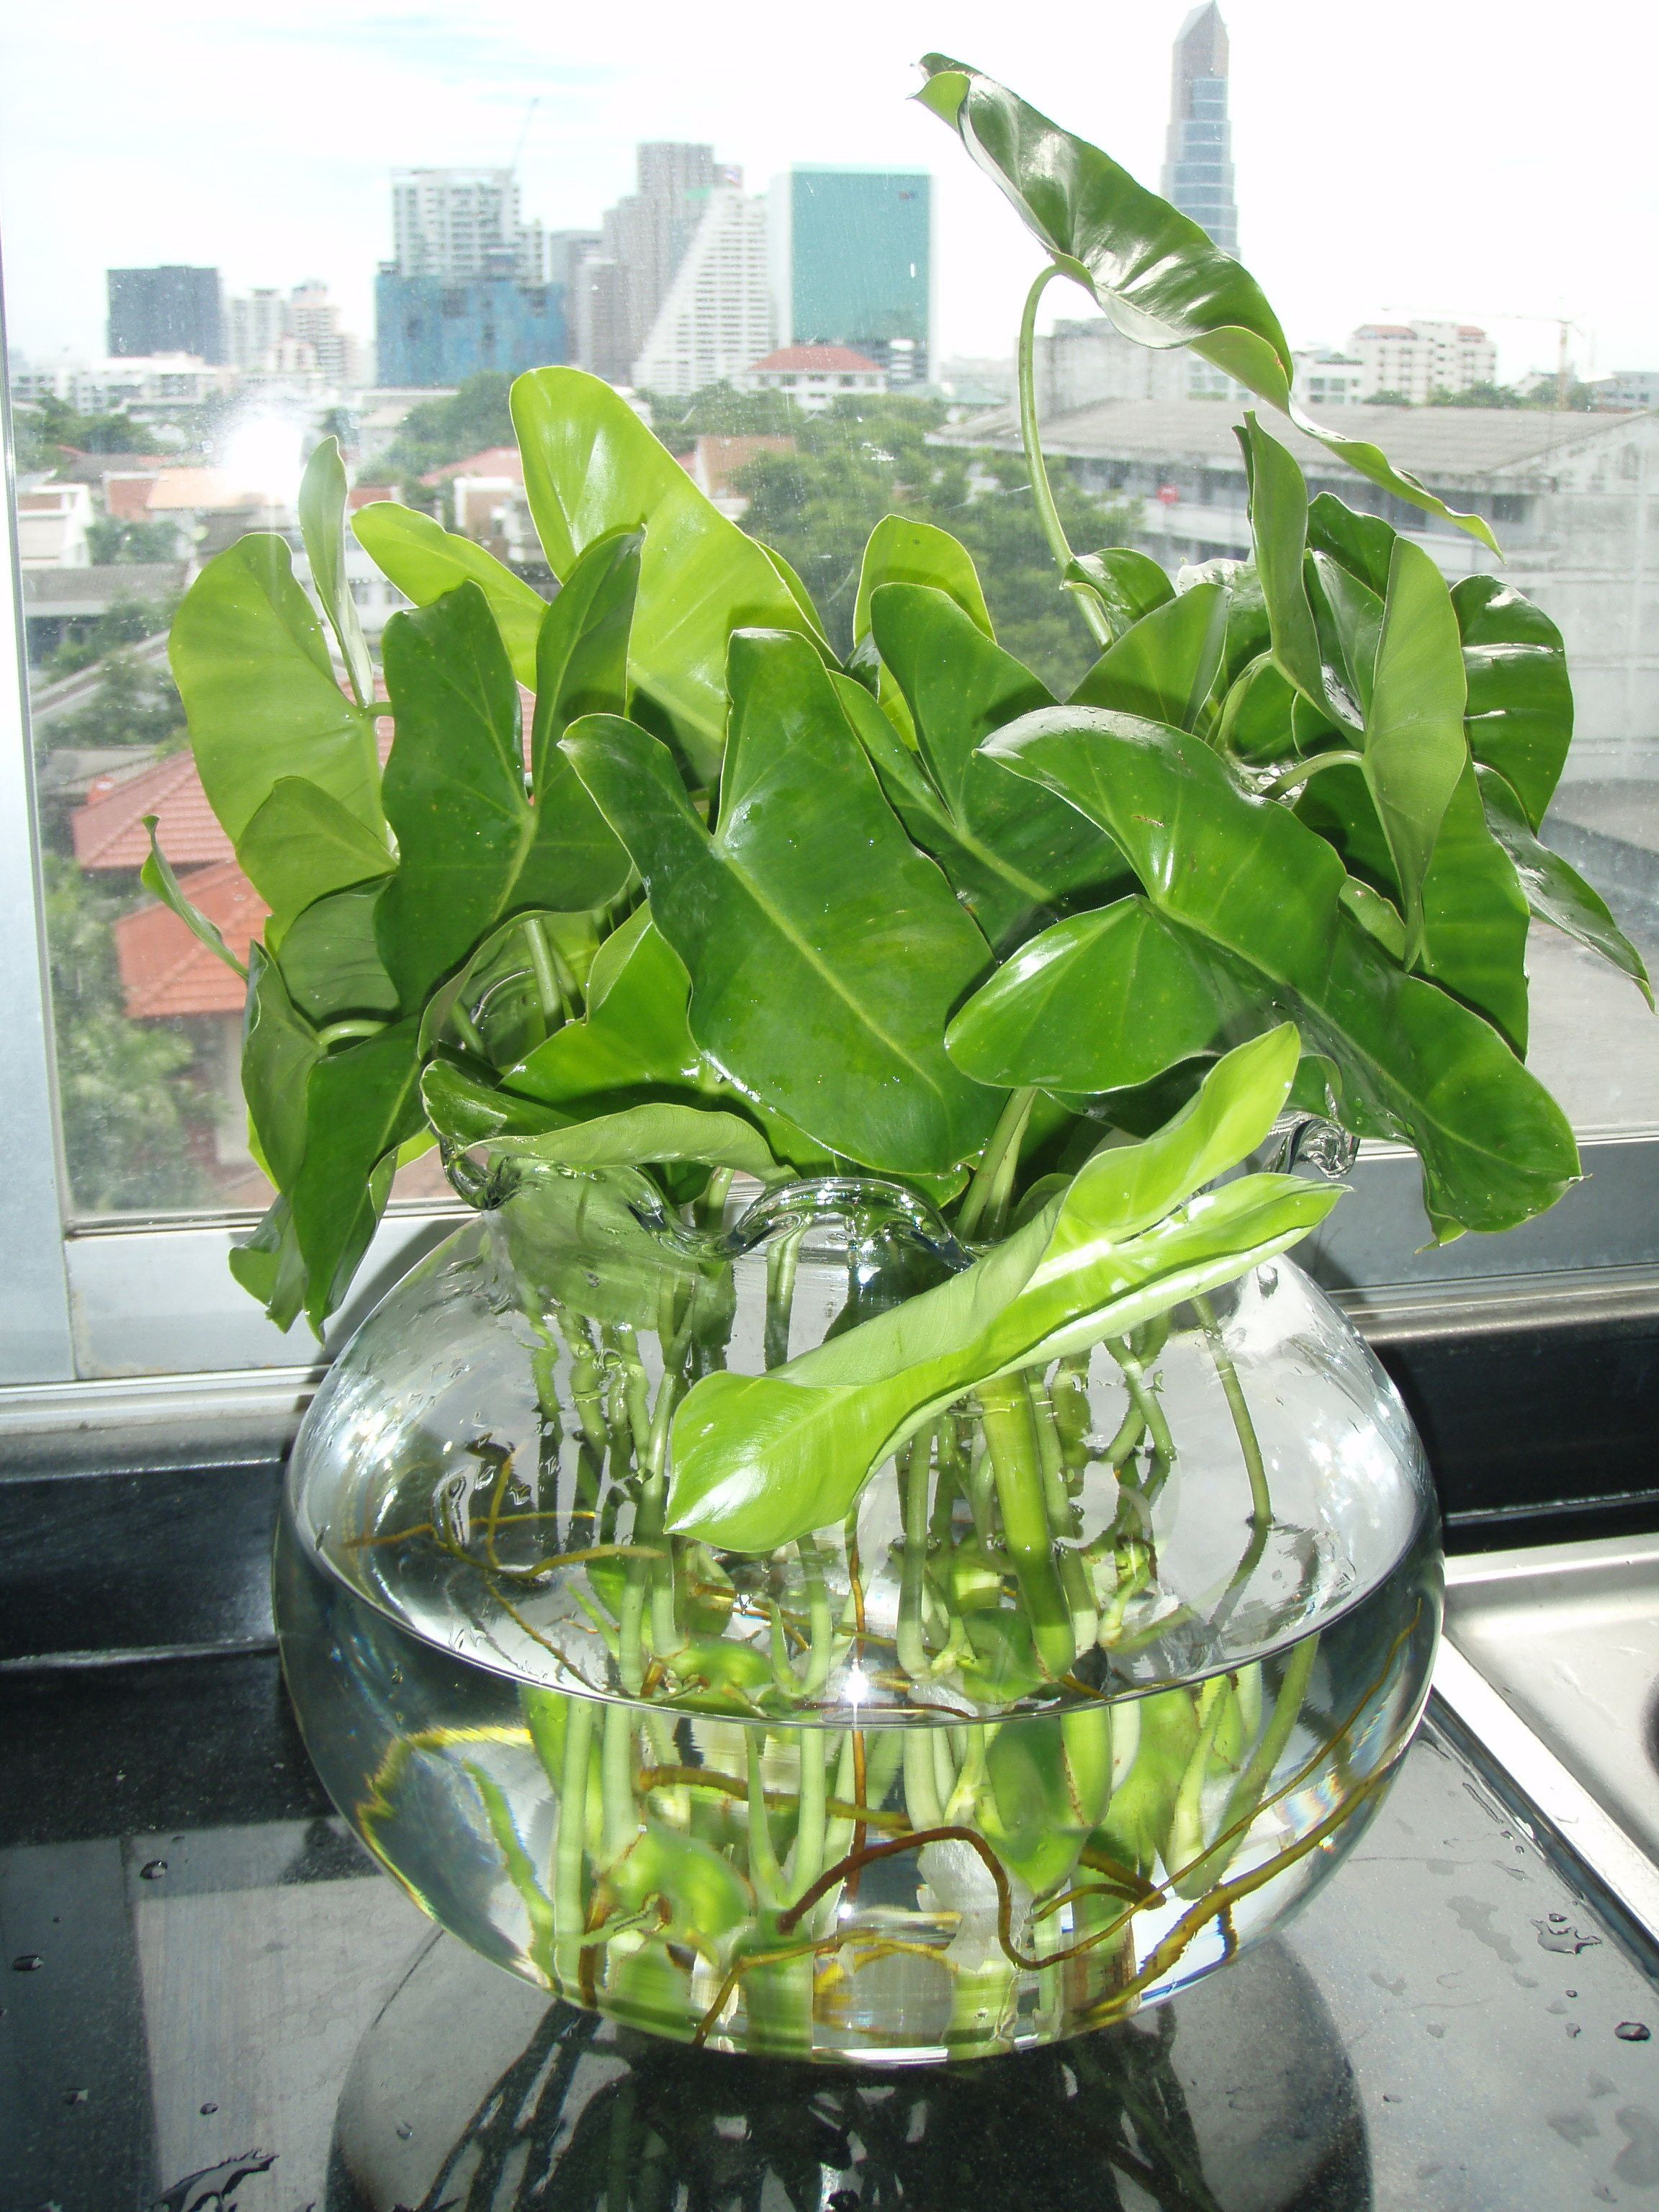 good looking house plant with large green leaves.  Gwak Nguen Tropical Creeping and Foliage Plants Indoor PlantsLarge Large glass jars